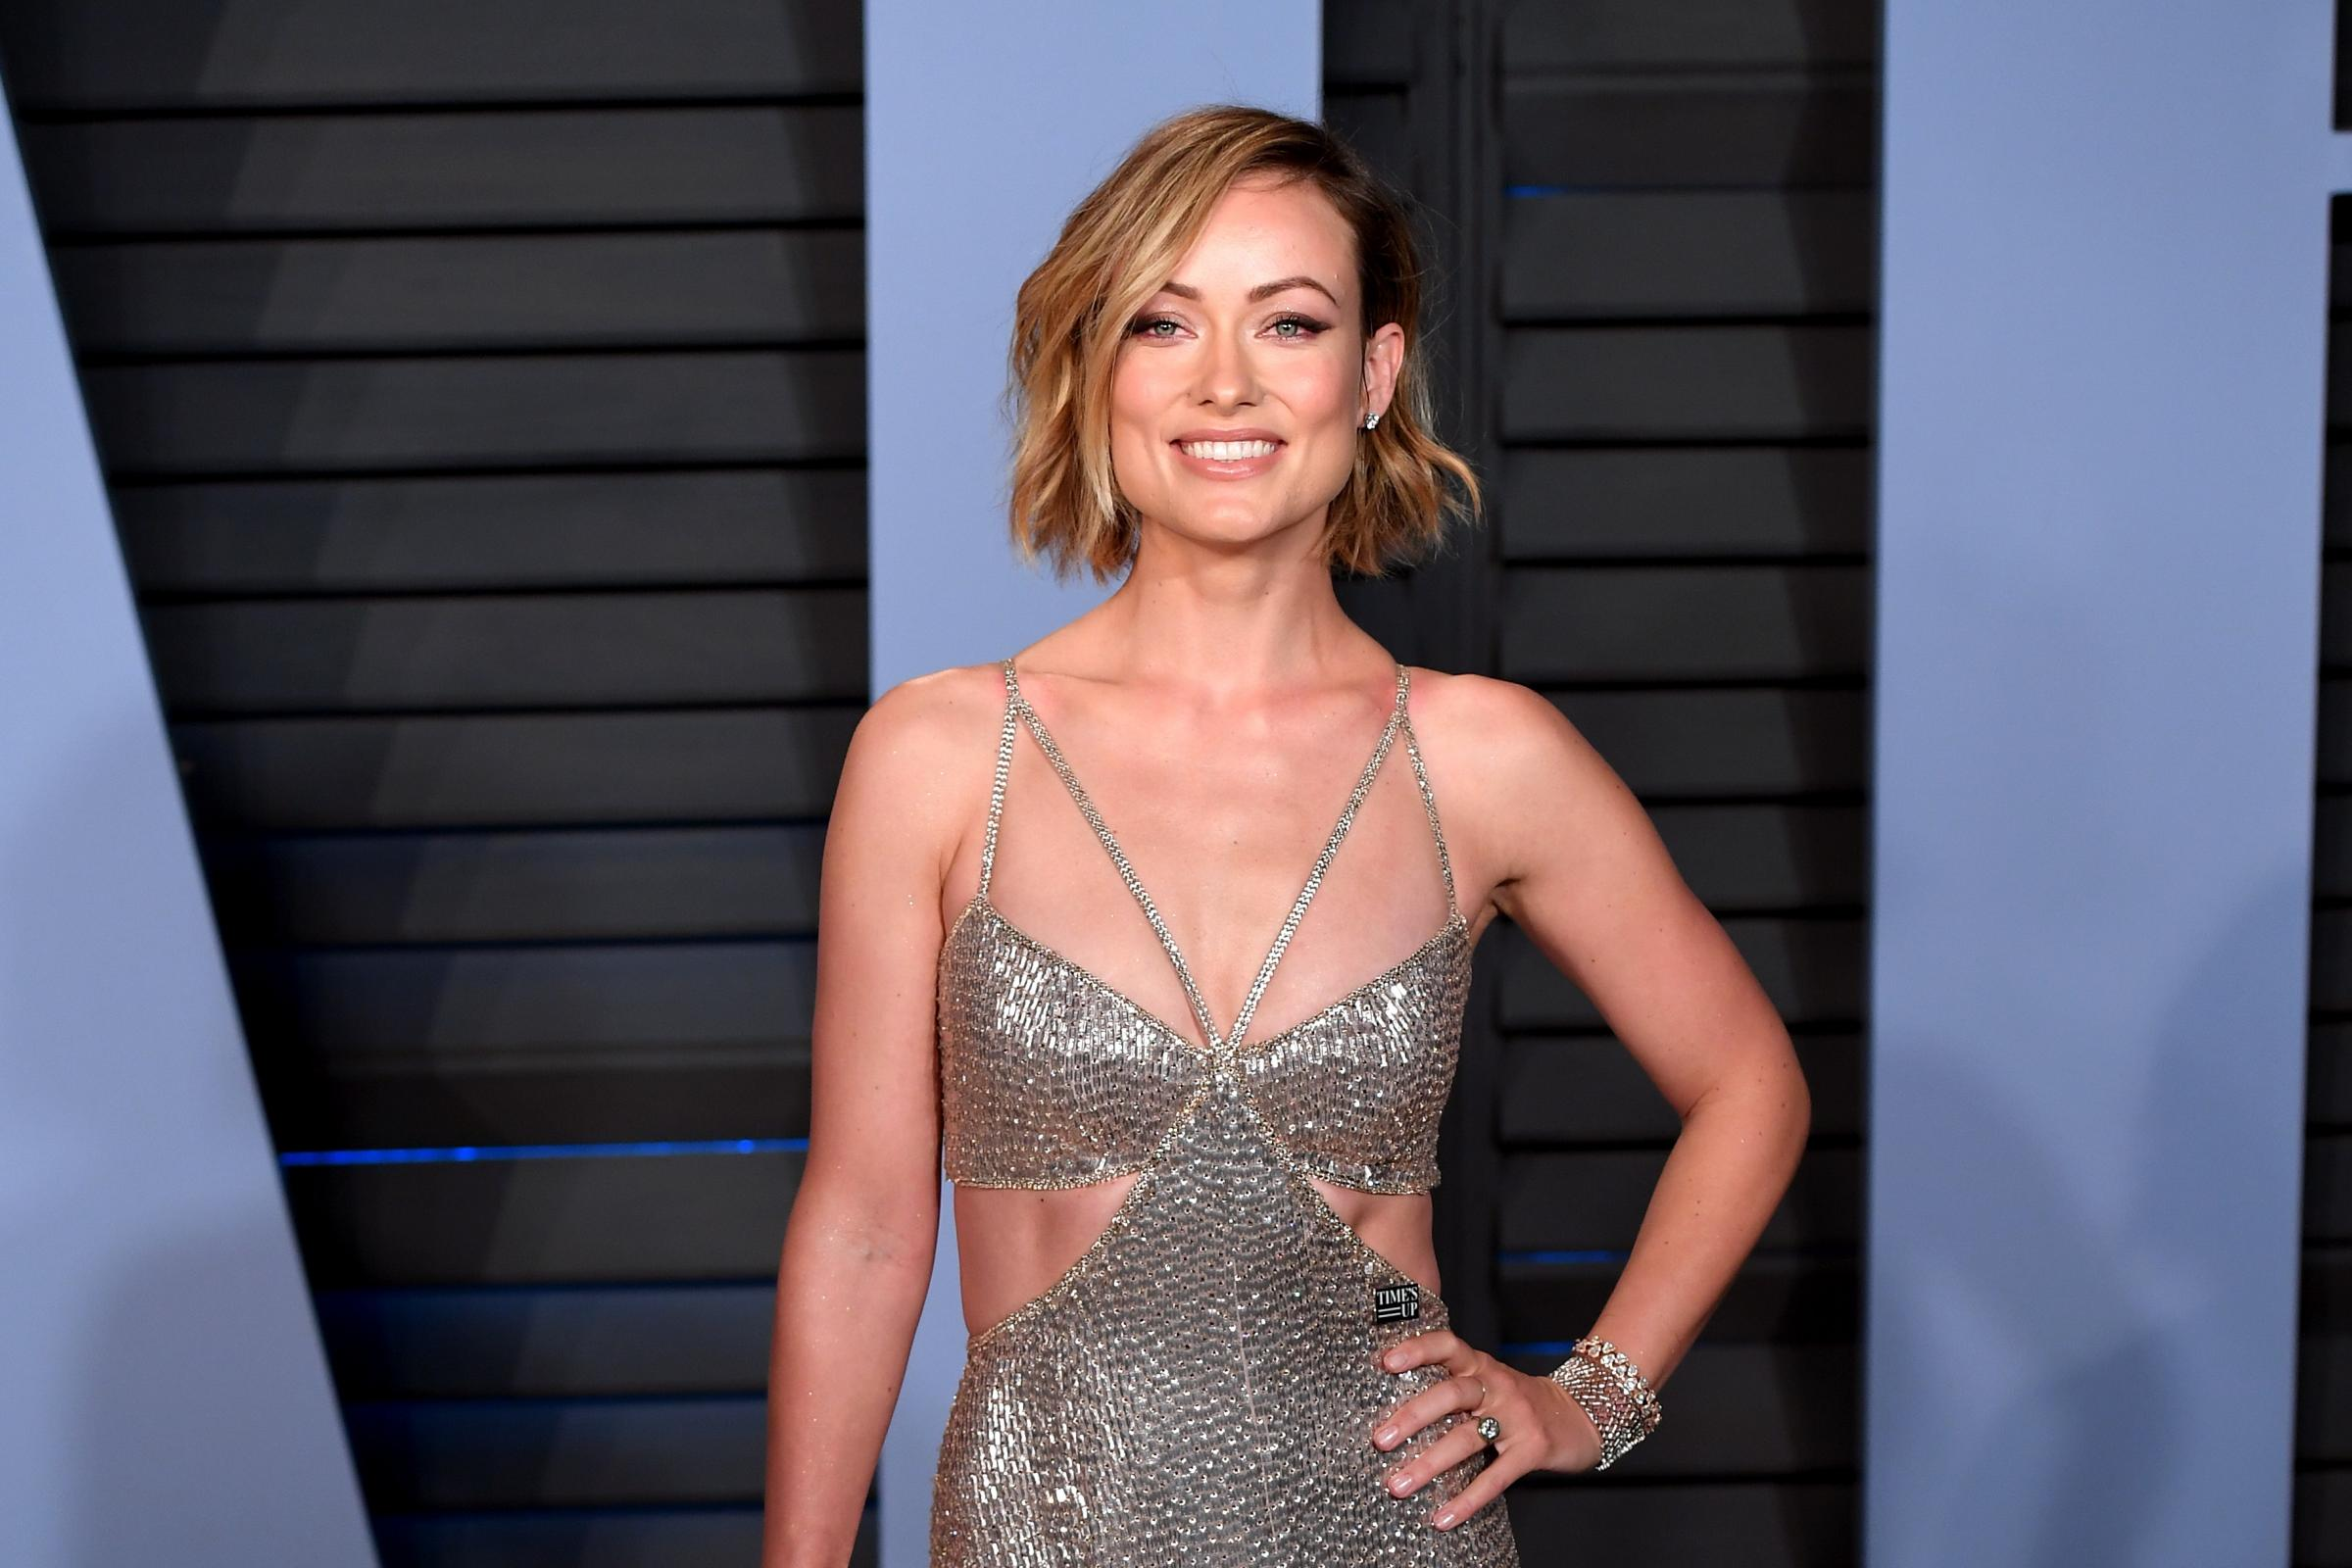 Olivia Wilde, who has praised young people